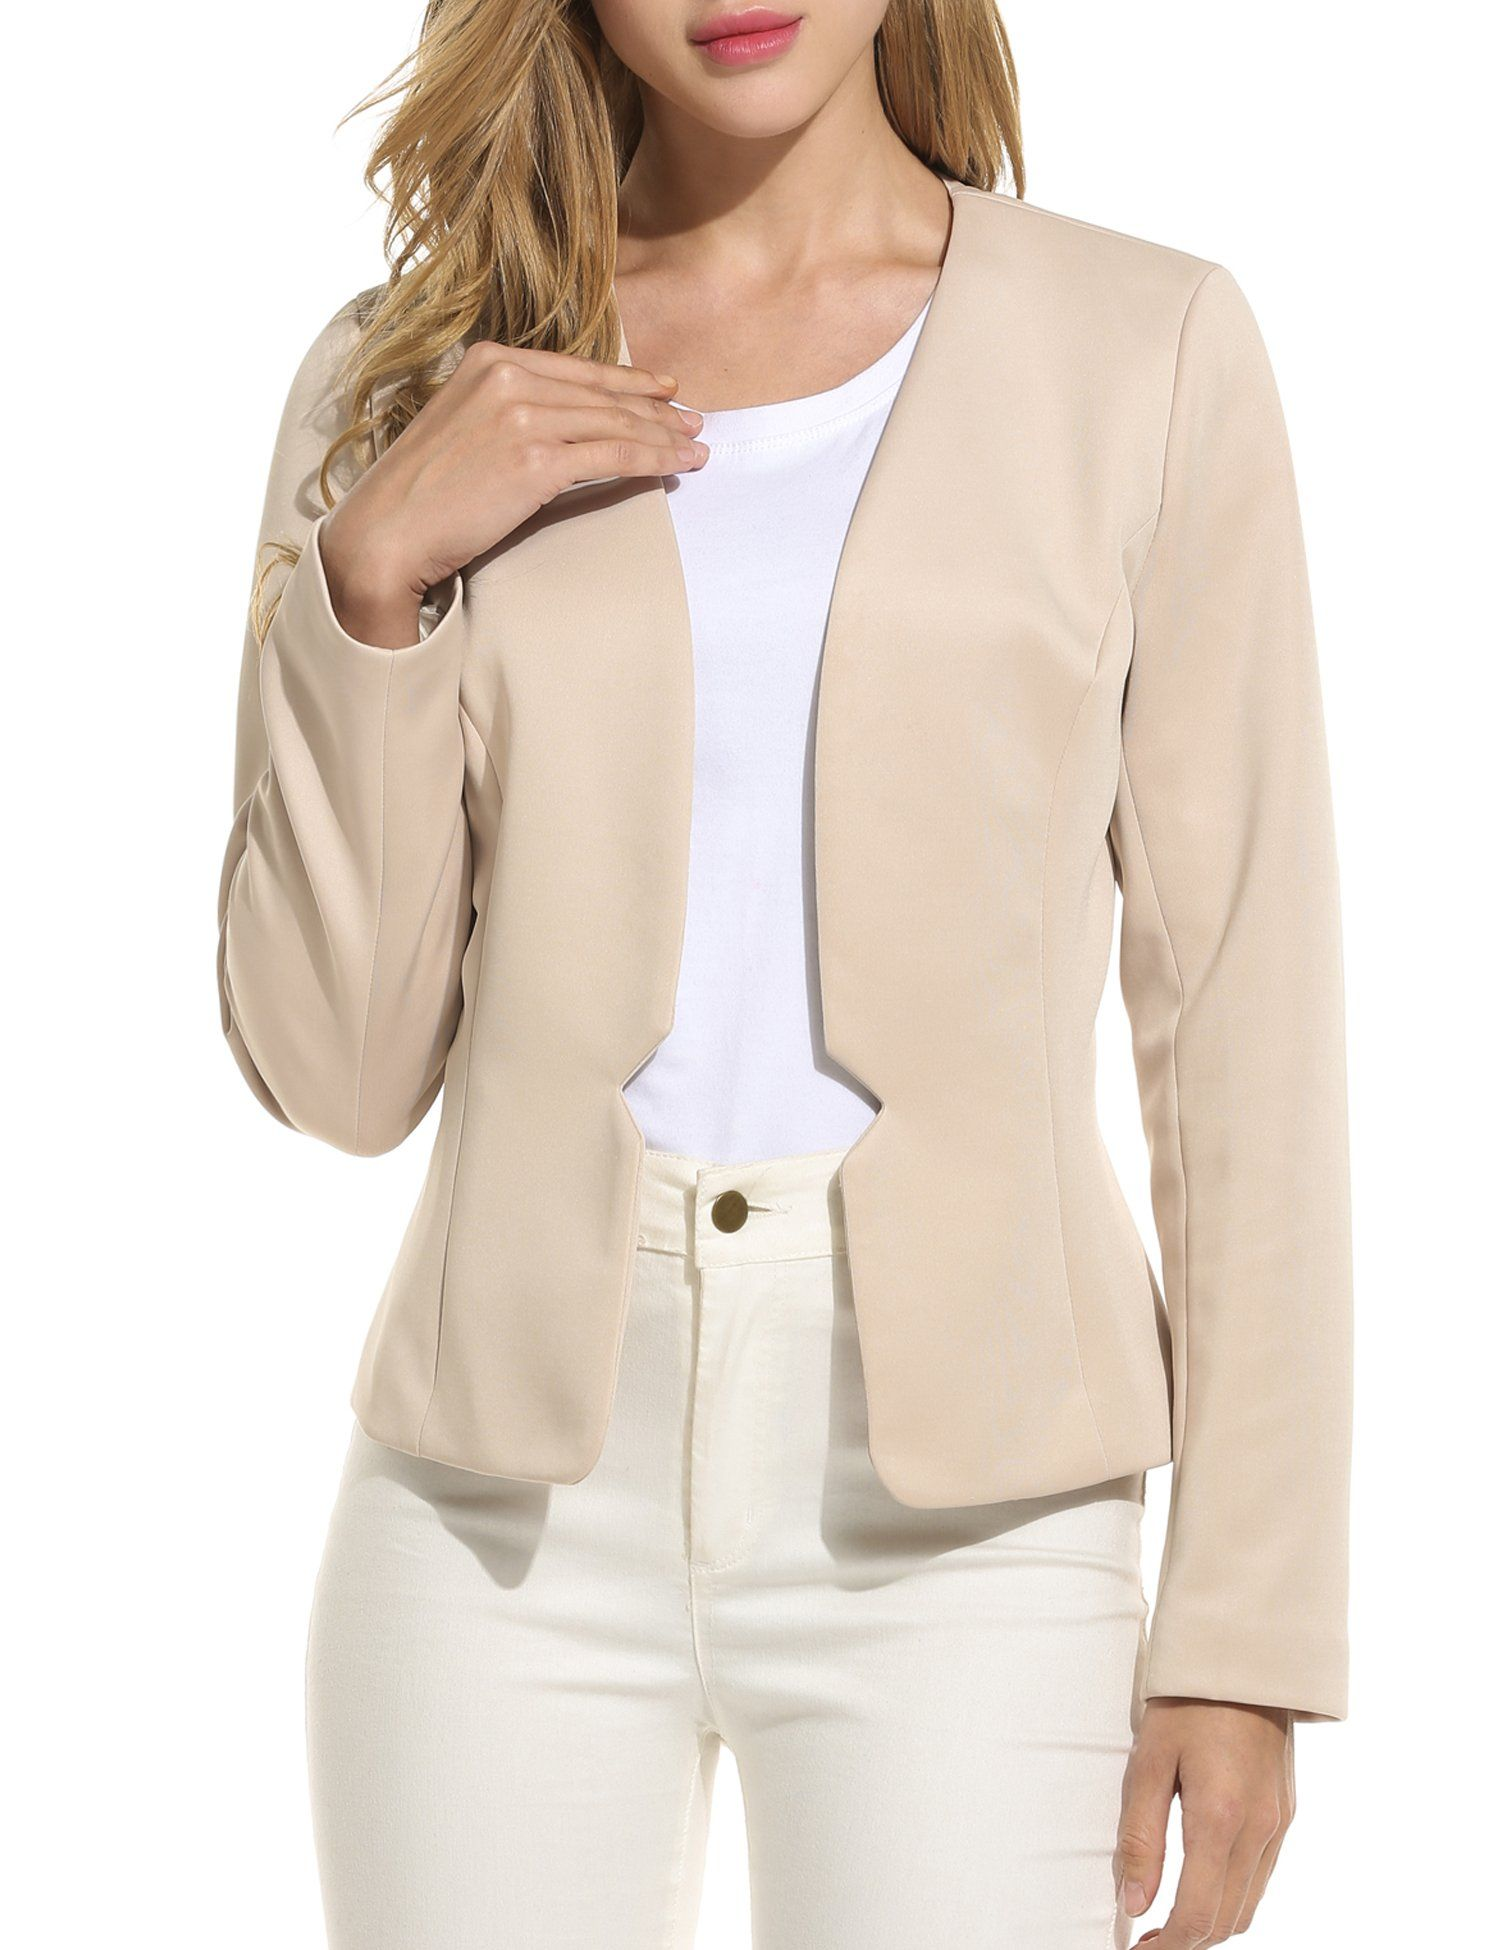 664dd347c91 ANGVNS Women Casual Work Office Open Front Cardigan Blazer Jacket ... ANGVNS